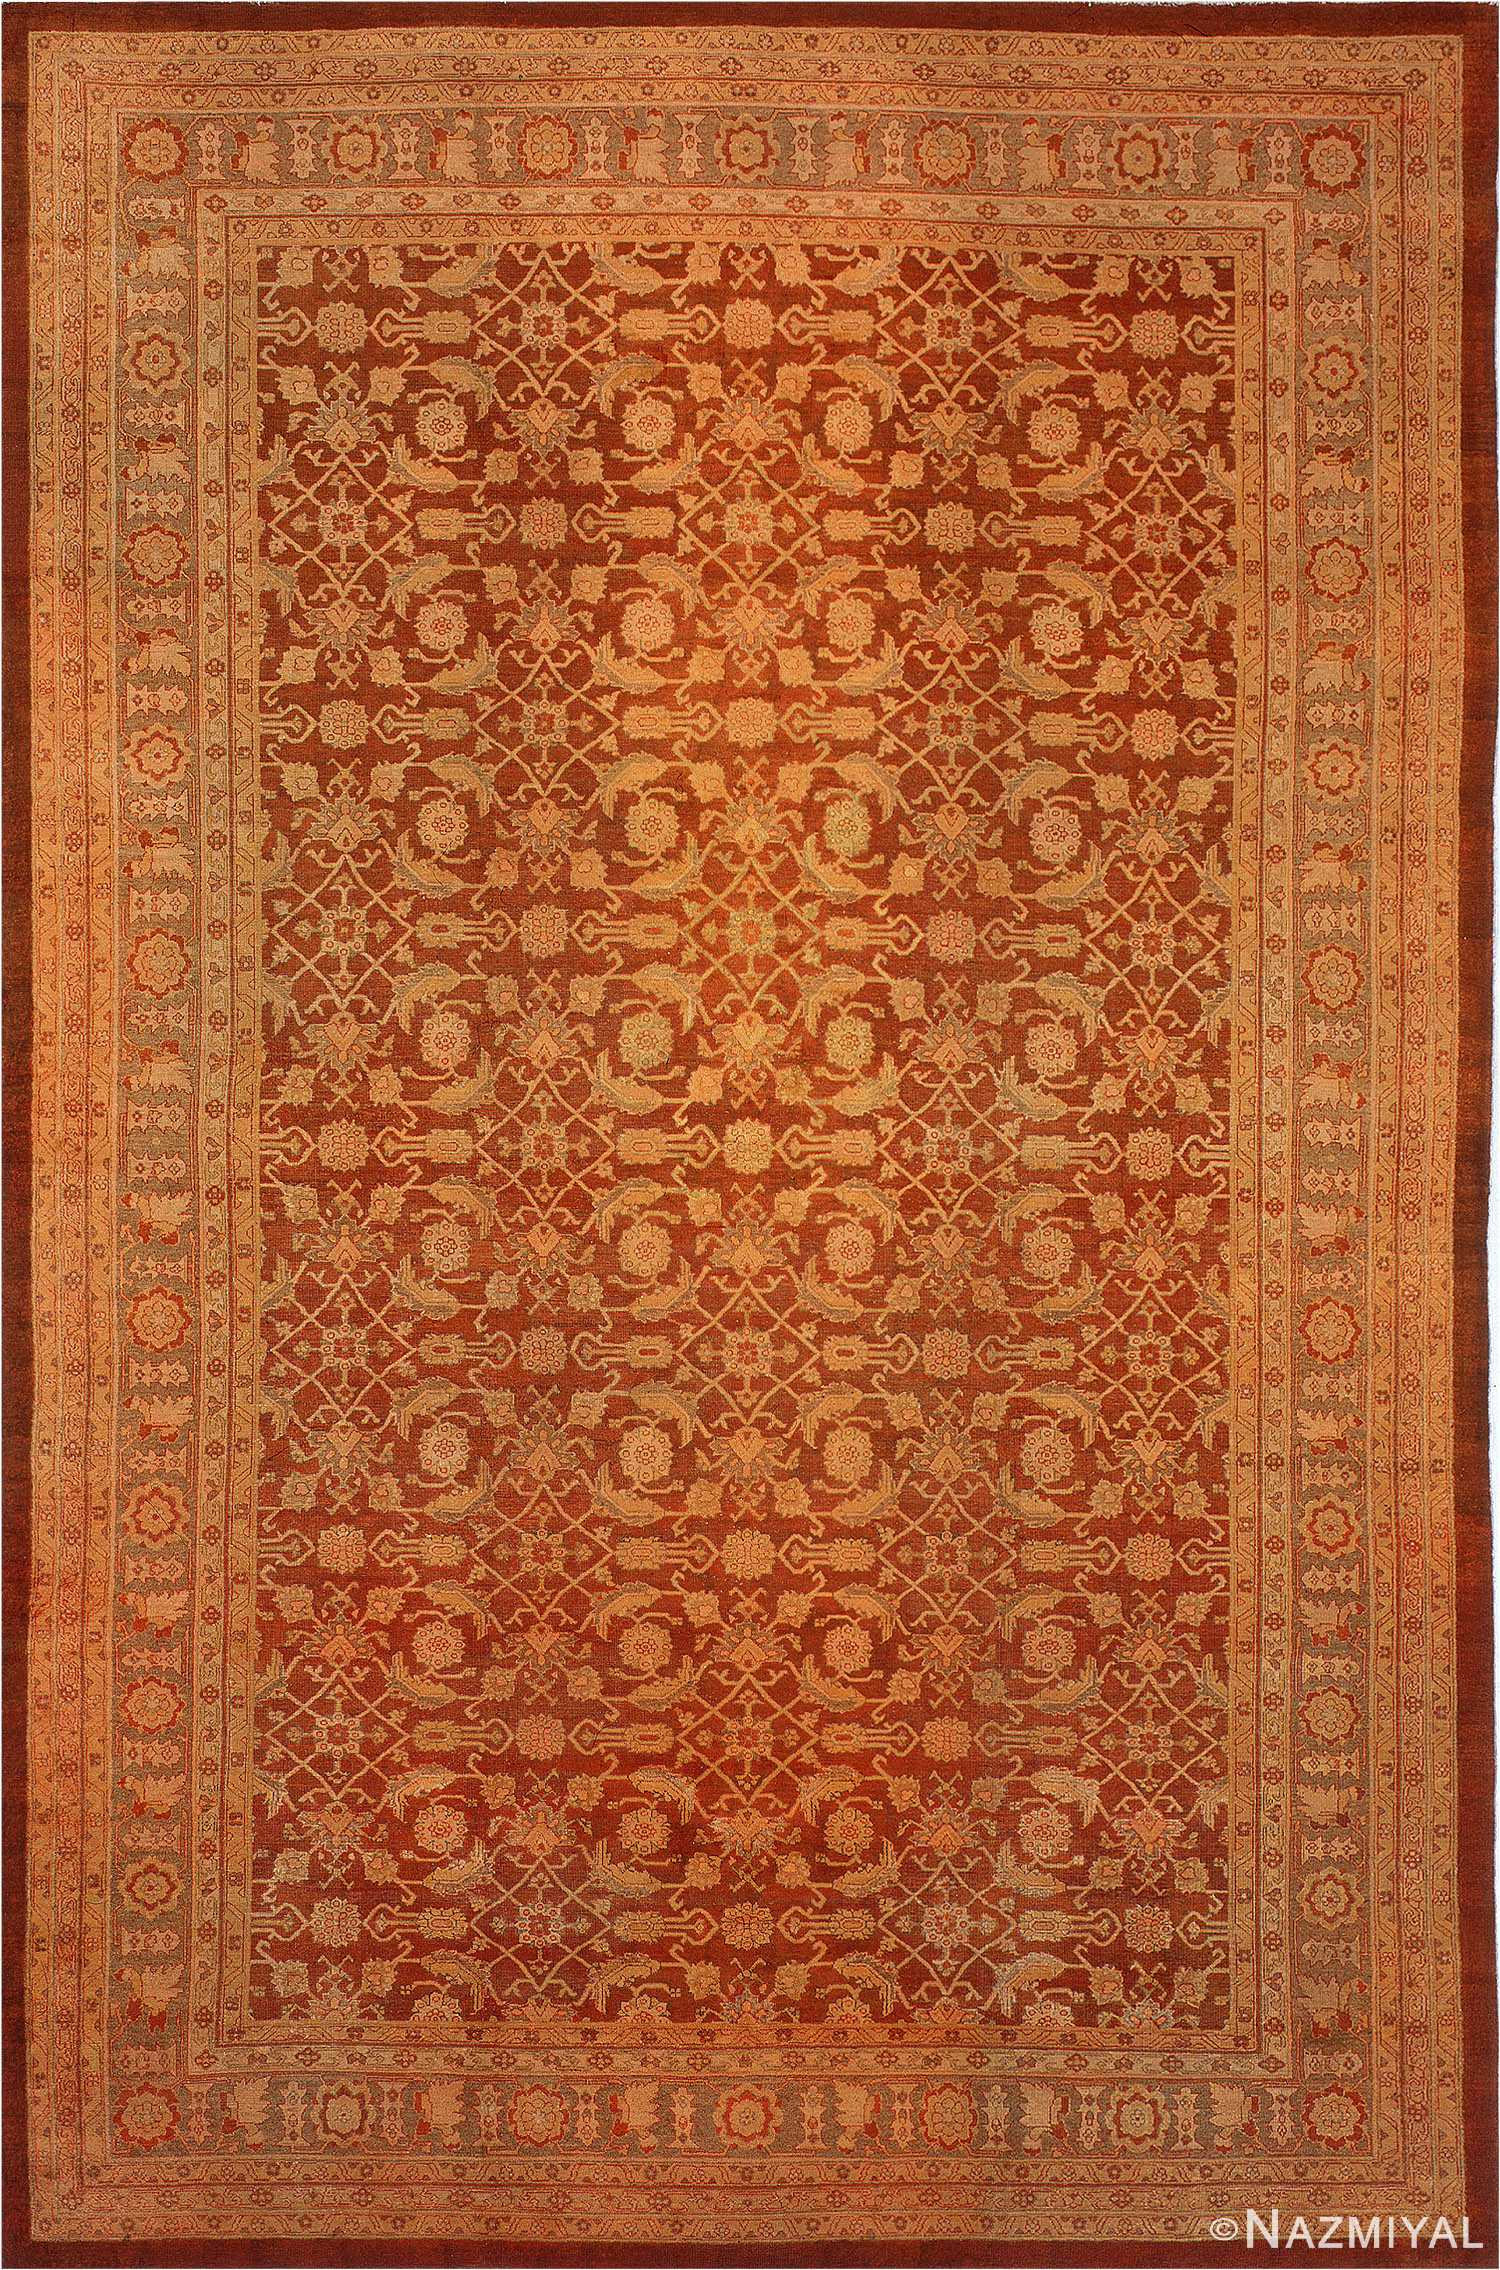 Antique Amritsar Oriental Rug 1574 Nazmiyal